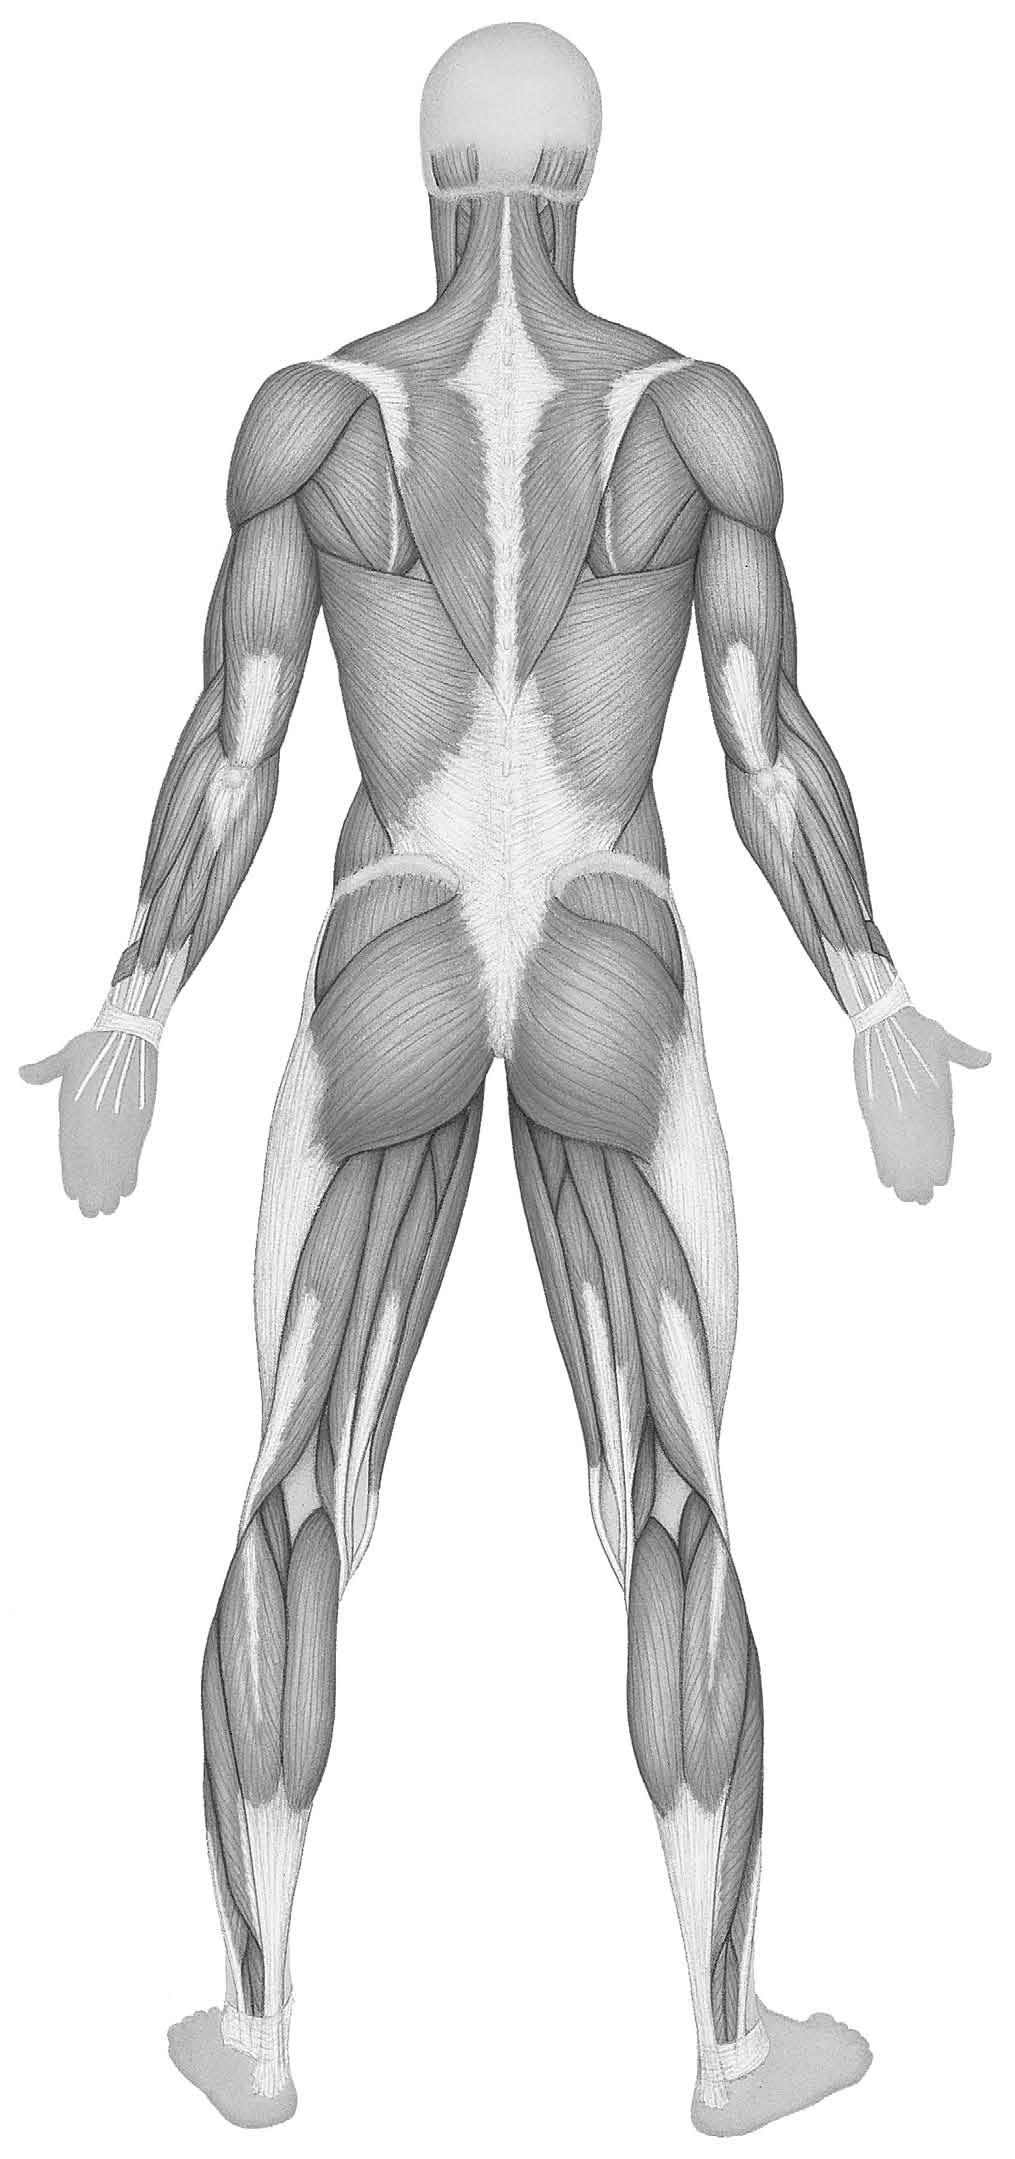 worksheet Muscular System Review Worksheet gross anatomy of the muscular system human muscles body source lr15181 188 5 12 04 1 07 pm p 187 03 302 l